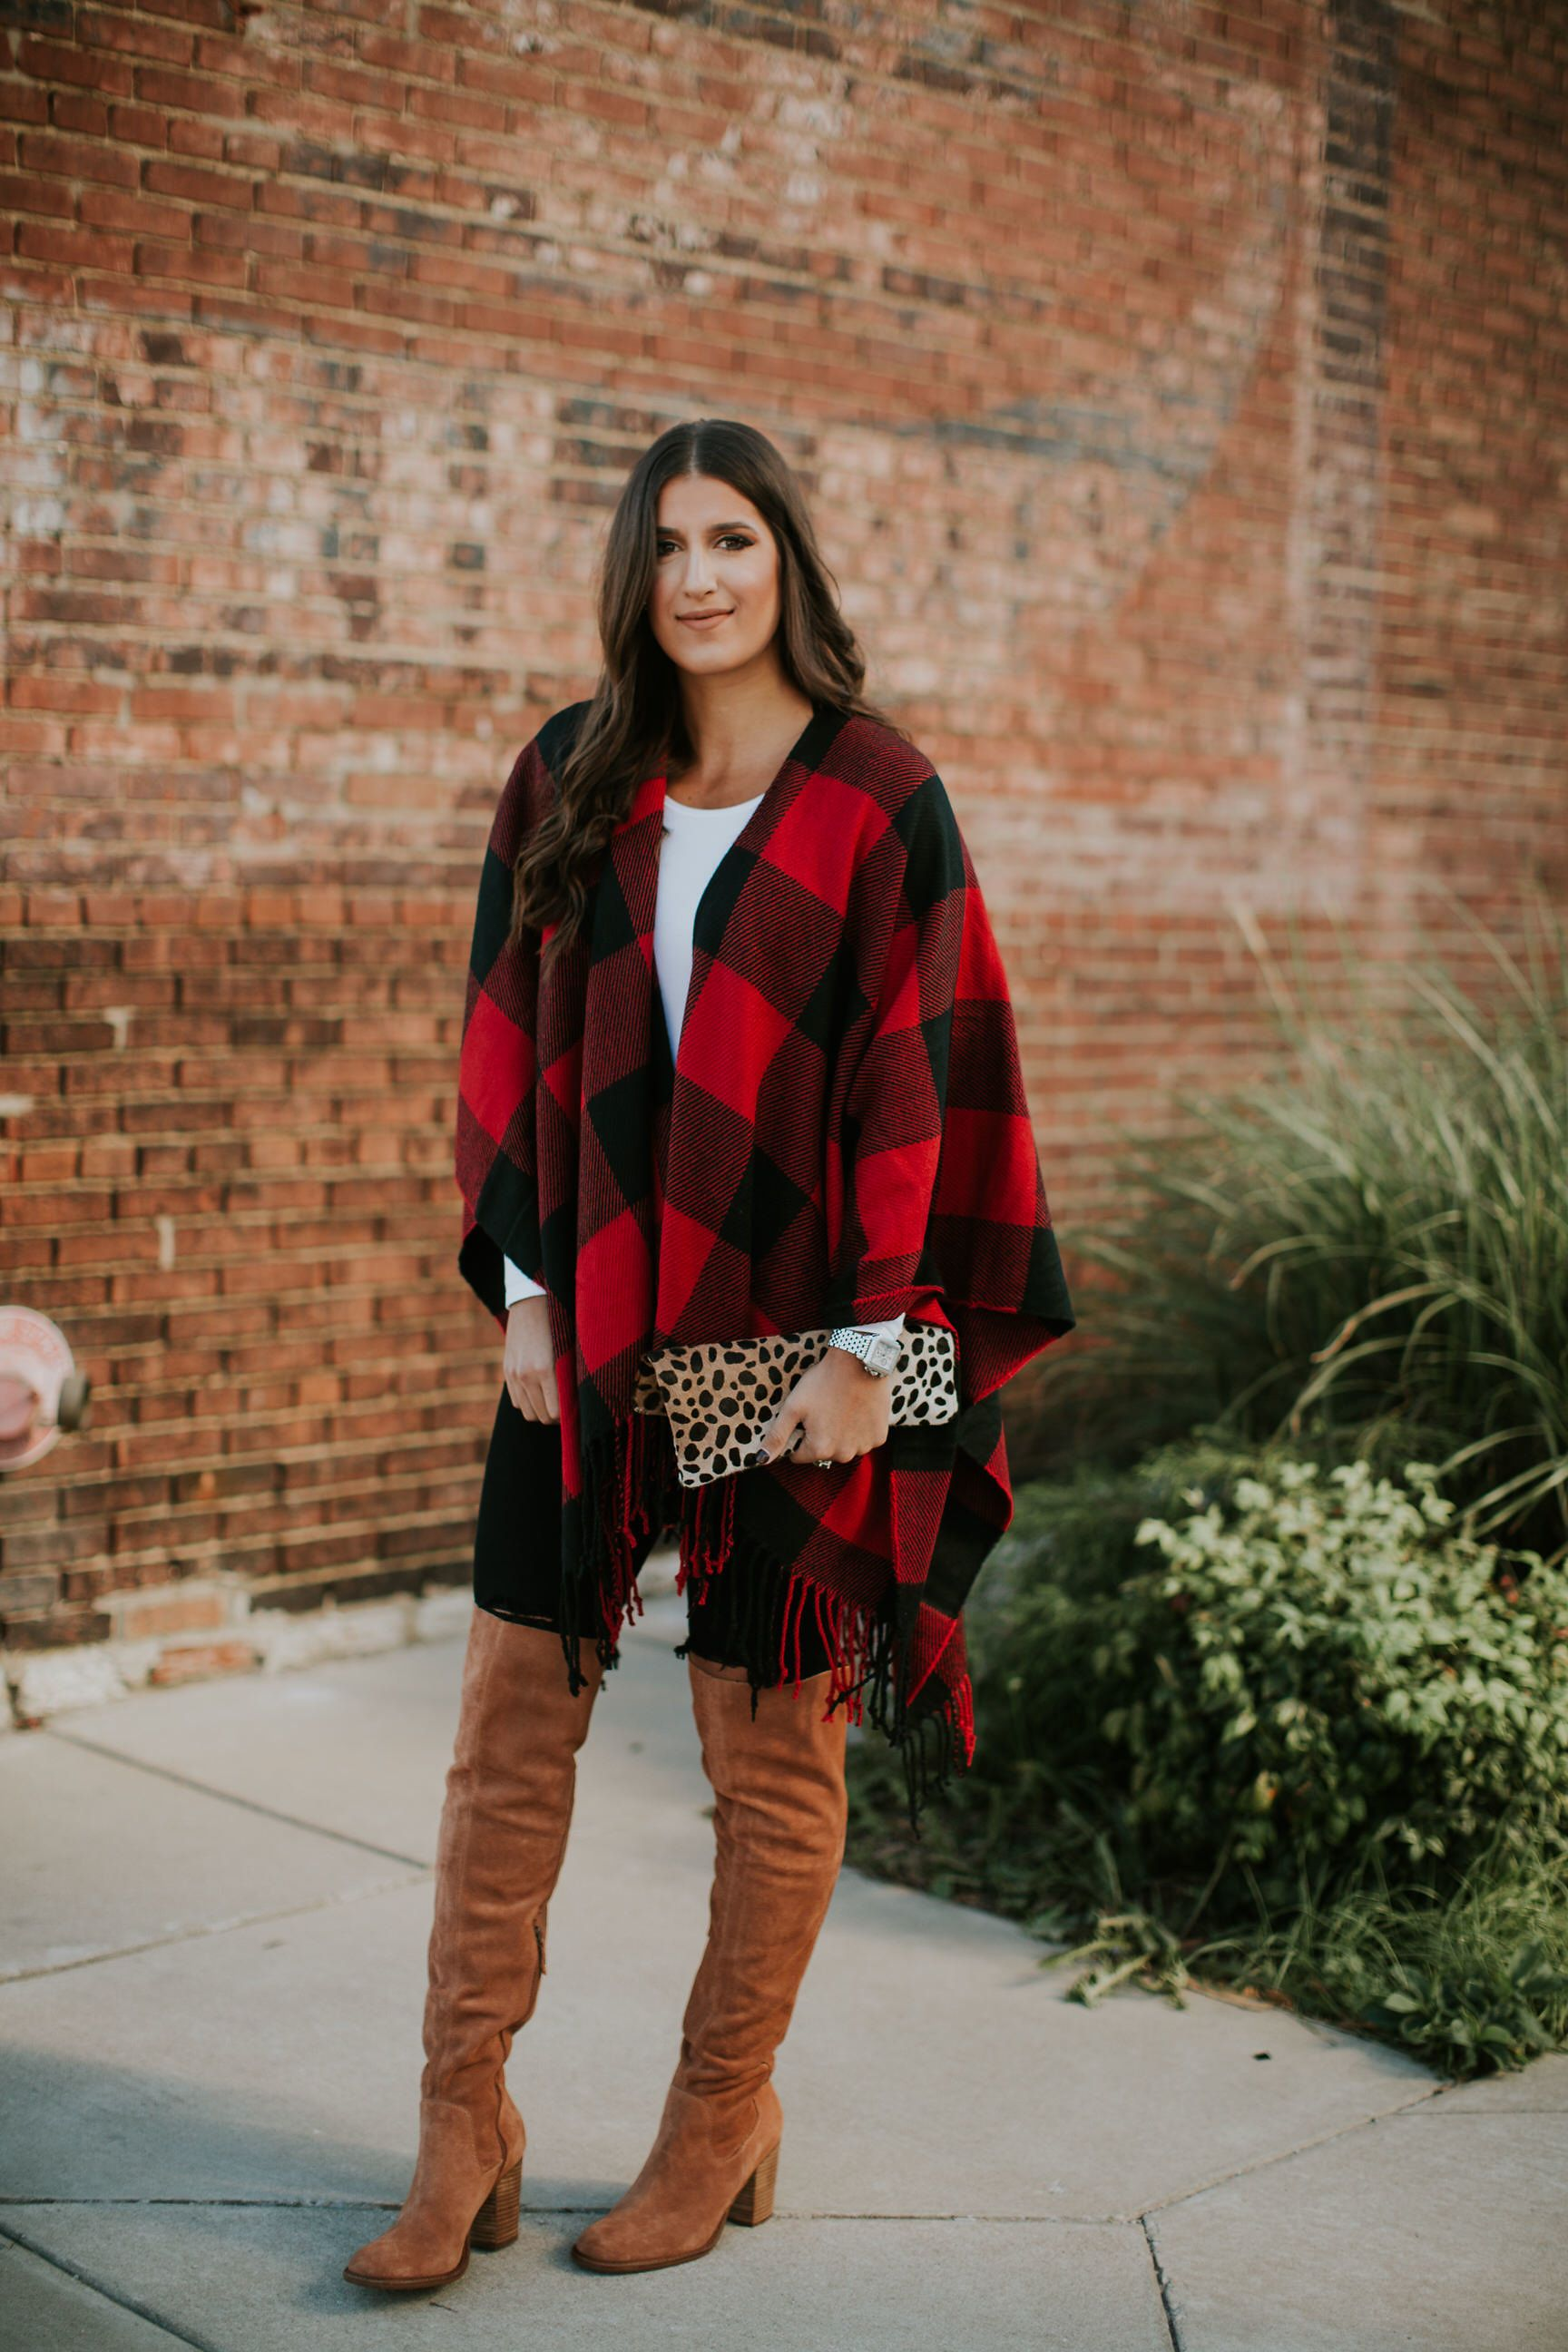 c11c2482018 White sweater+black skinny jeans+cognac over the knee boots+red and black  plaid poncho+leopard print clutch. Fall Casual Outfit 2017